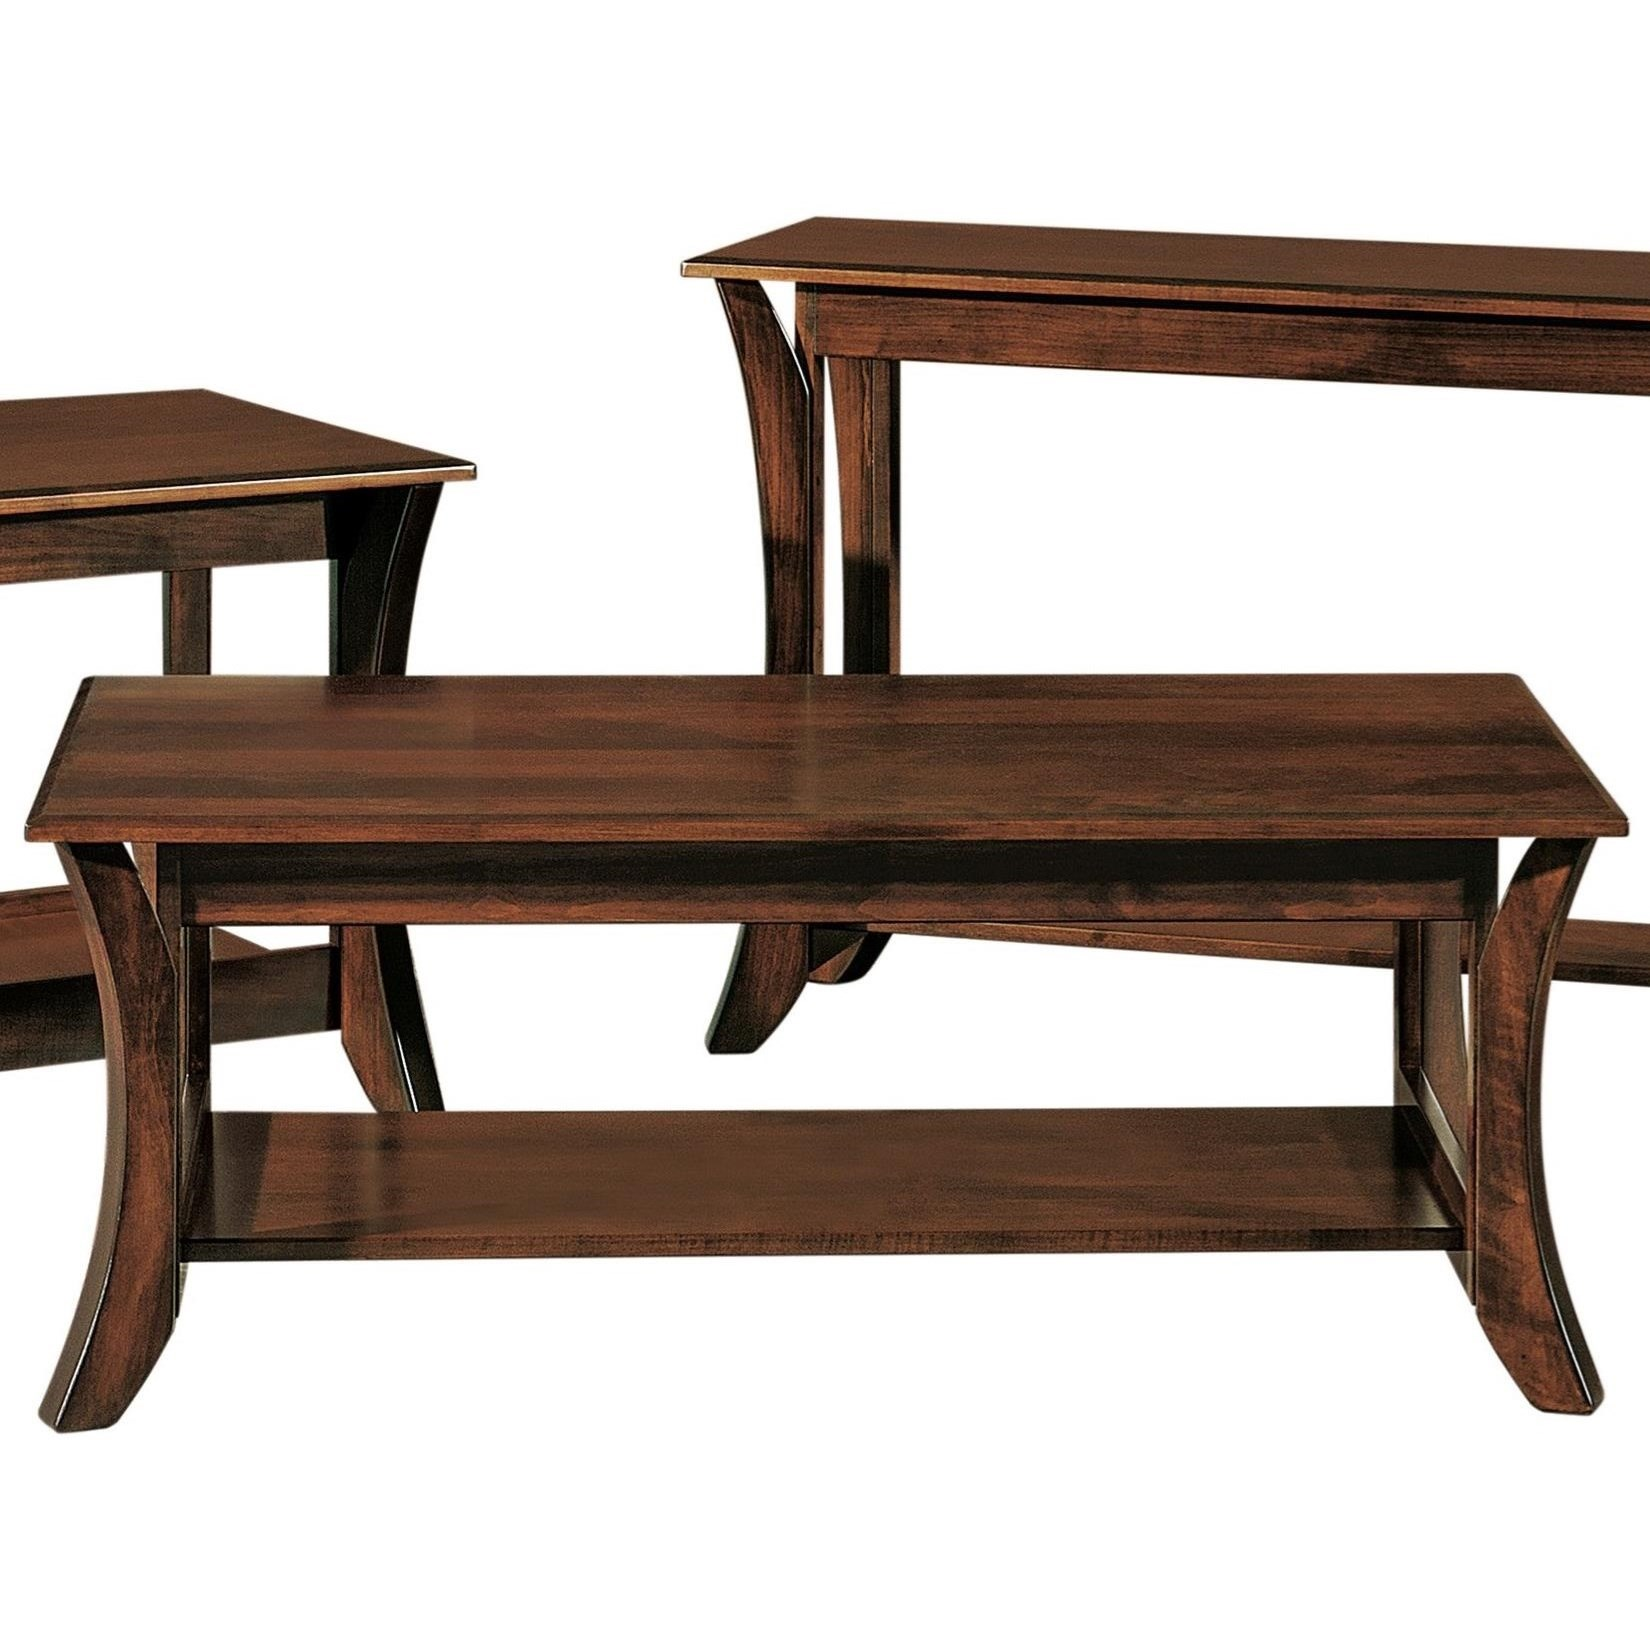 Discovery Coffee Table by Crystal Valley Hardwoods at Saugerties Furniture Mart